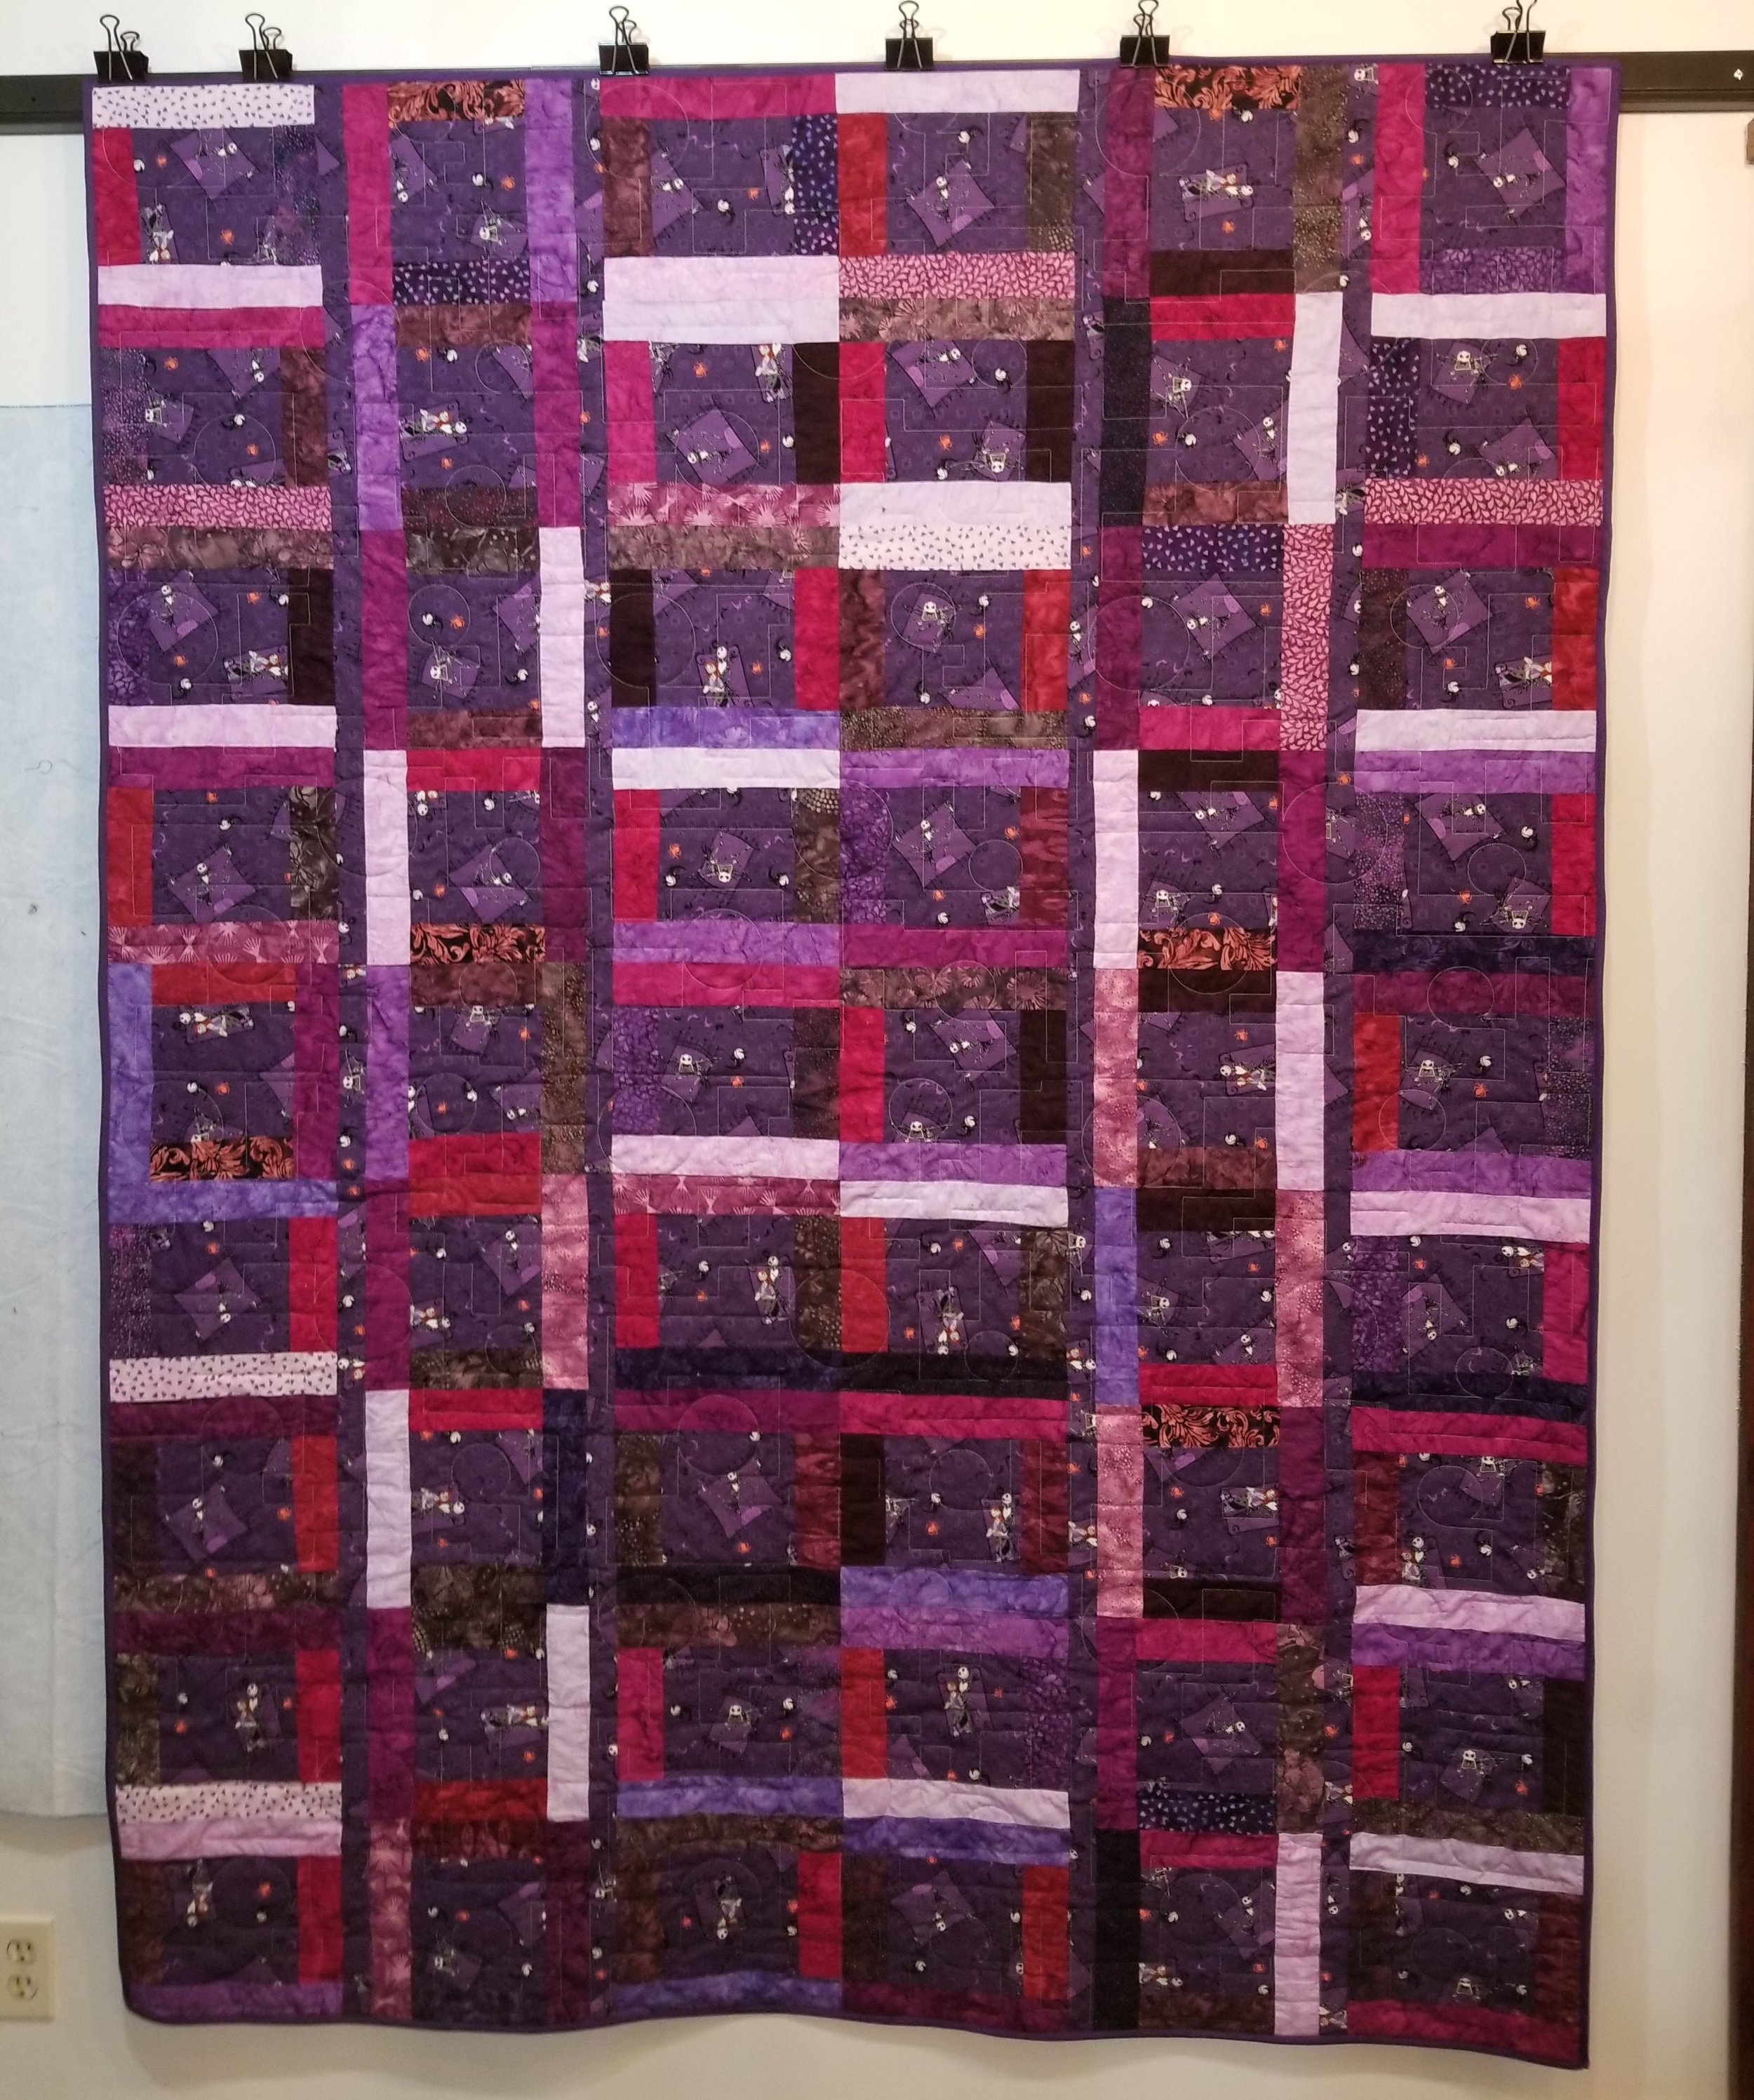 If you look closely, you will see the purple binding used to finish this quilt.  A perfect compliment that shows up better in person.